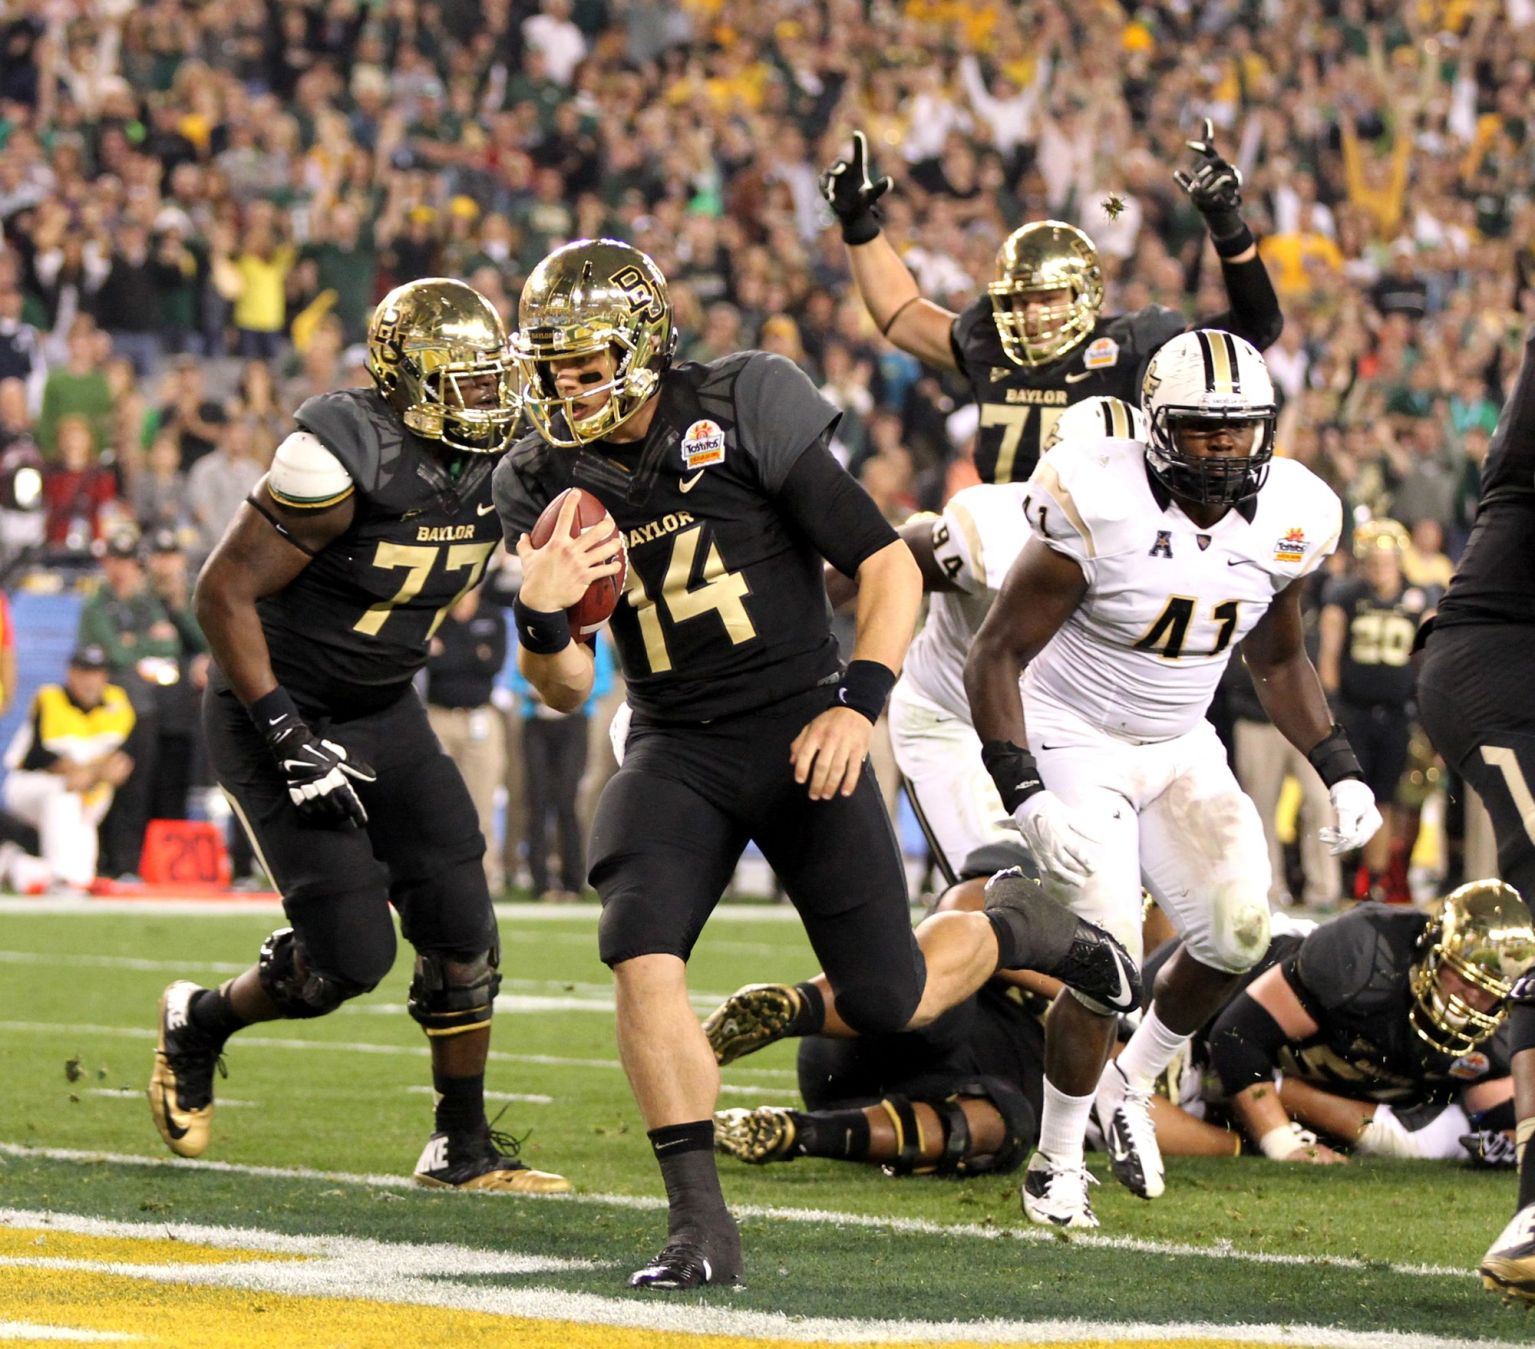 baylor football - photo #9